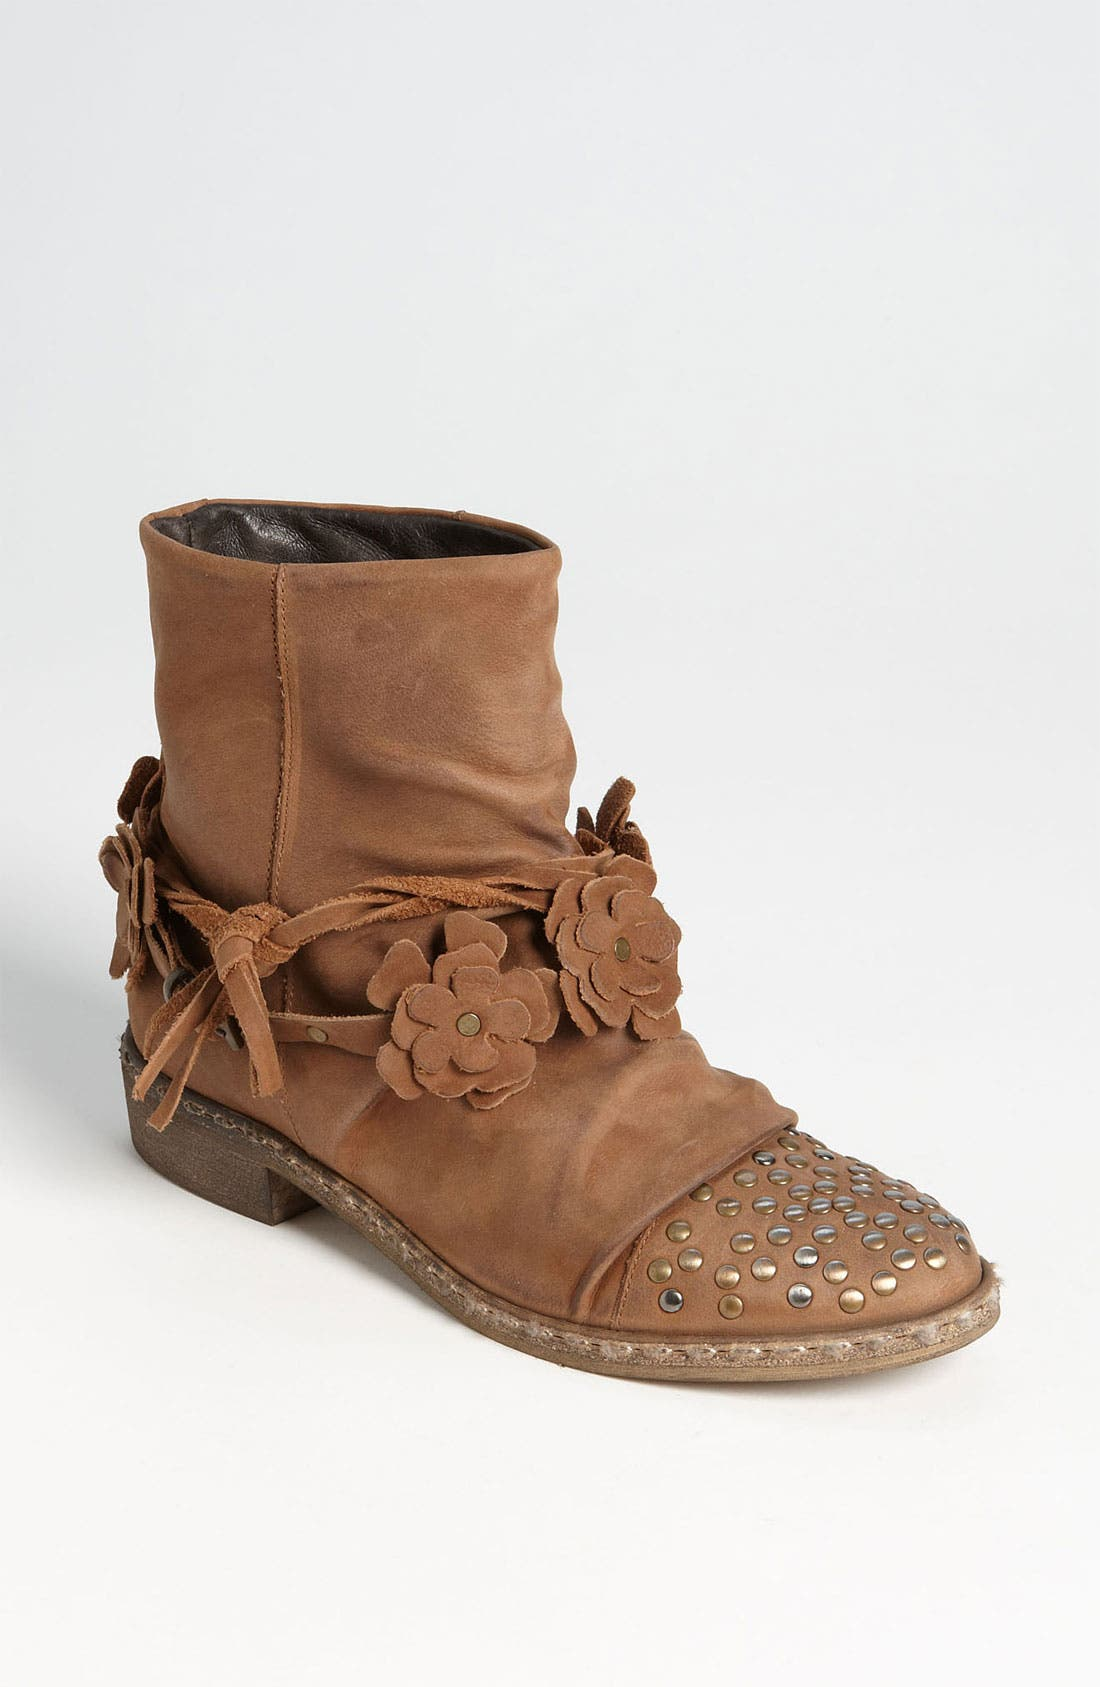 Alternate Image 1 Selected - Mery Studded Ankle Boot